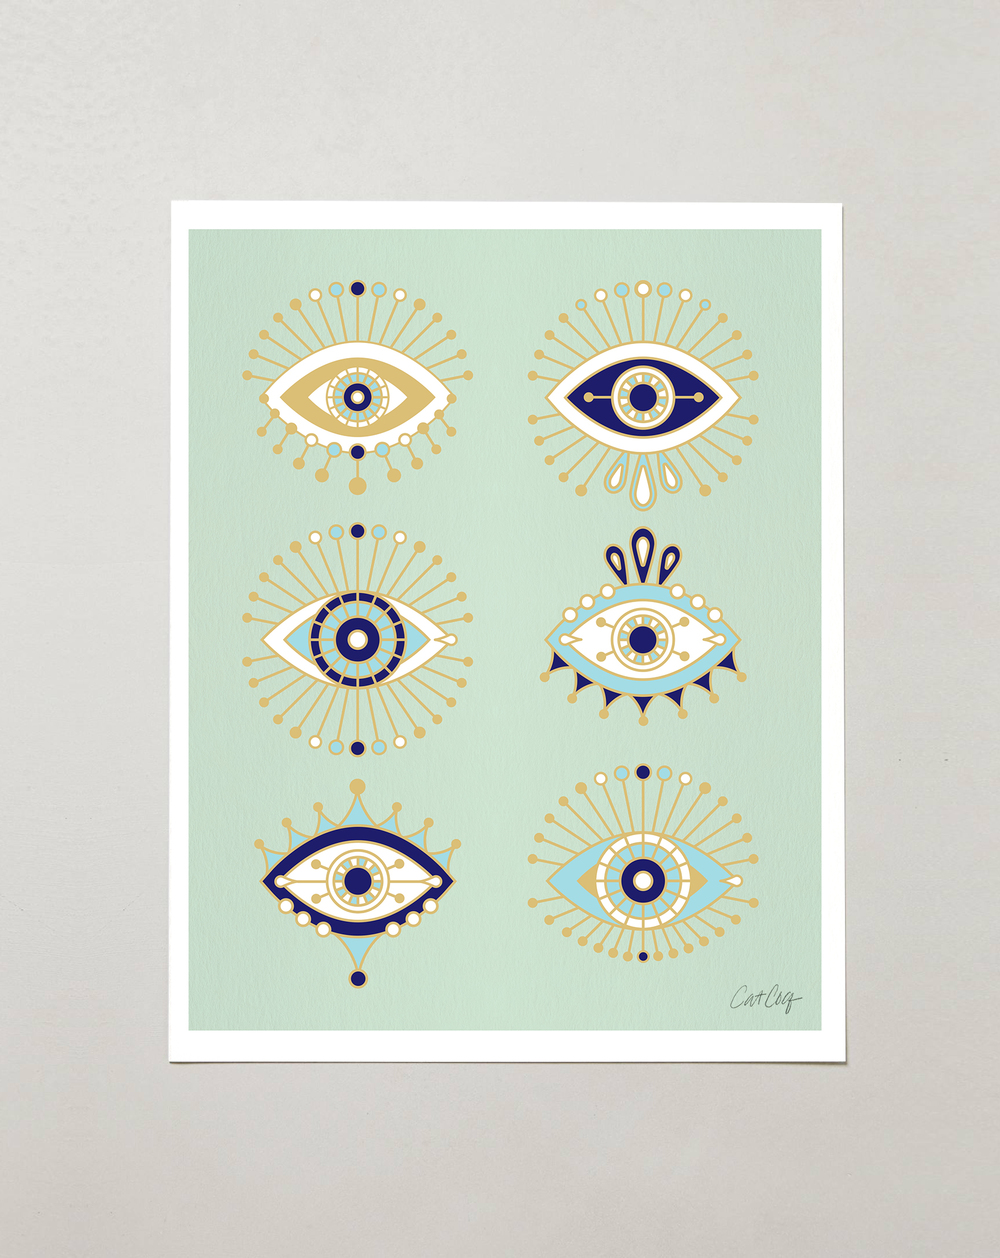 Mint Evil Eye Collection art prints available here.